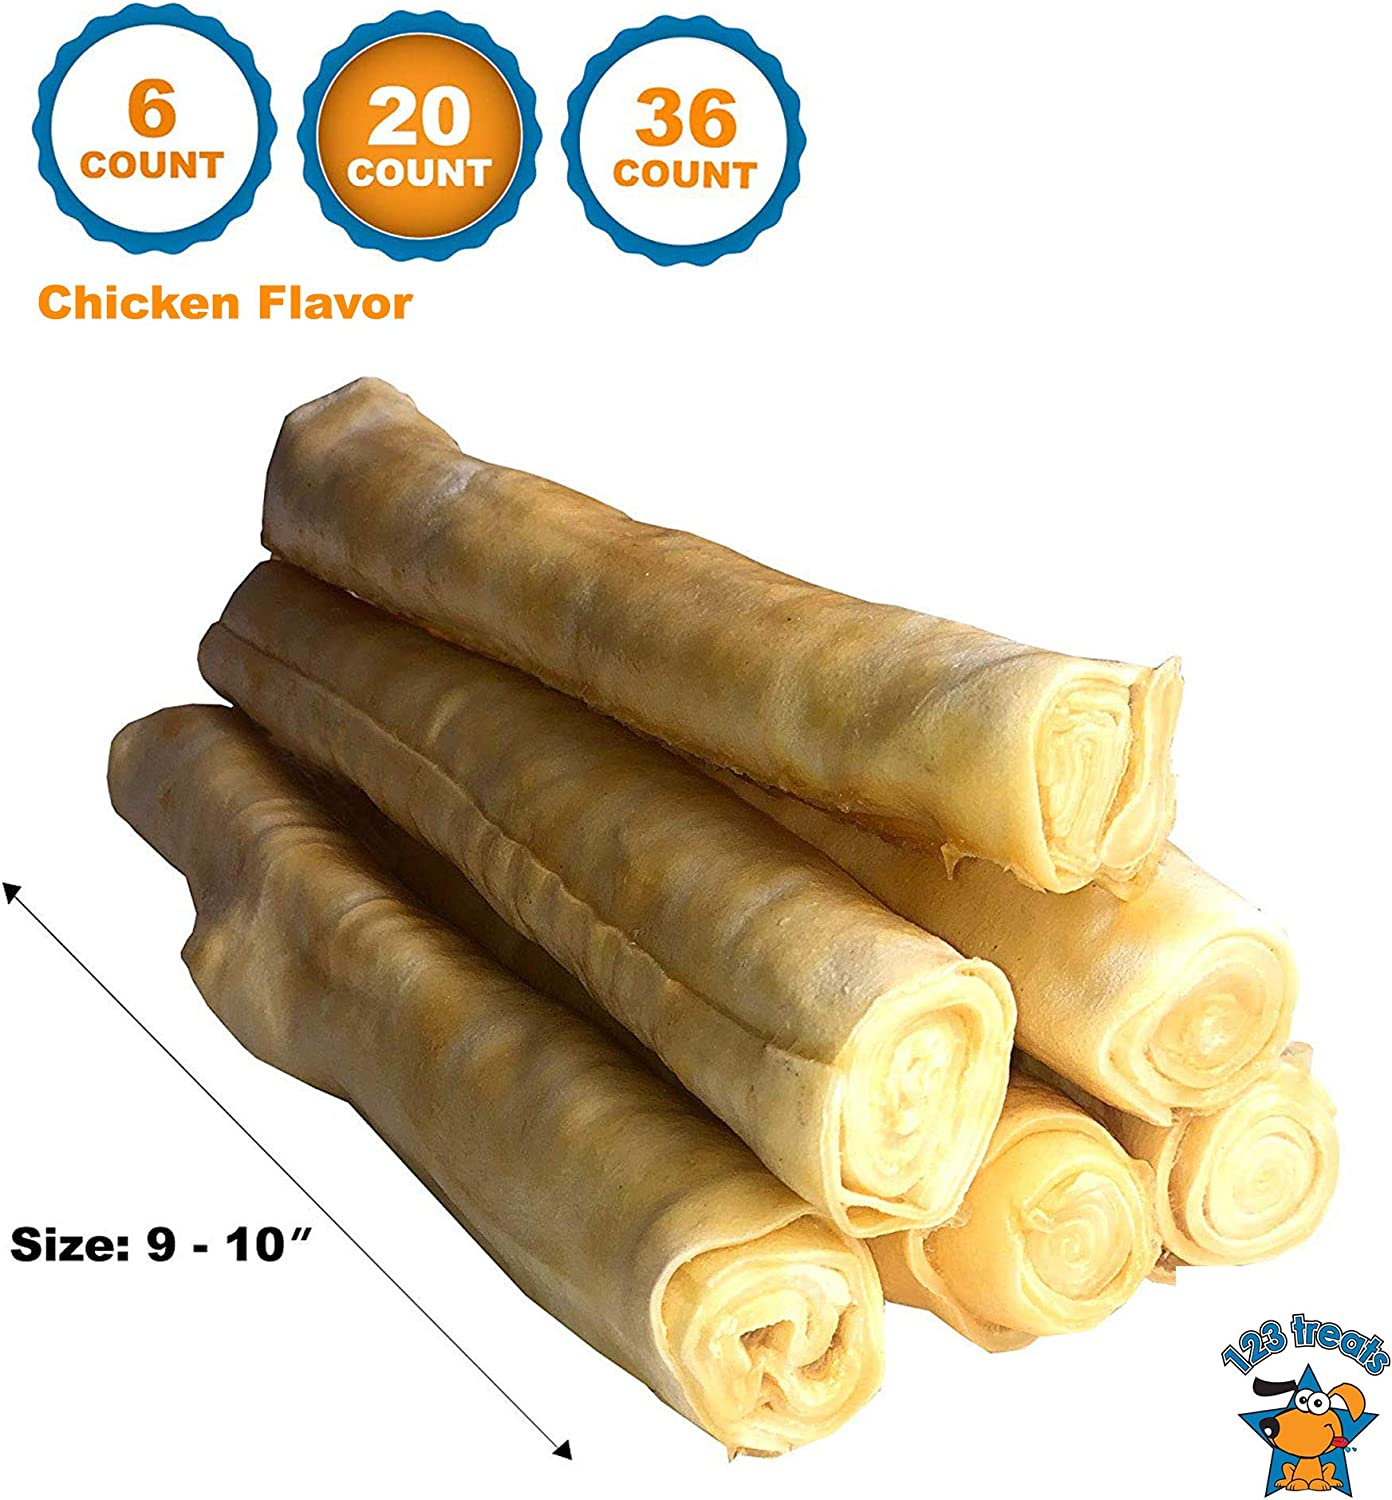 123 Treats Rawhide Retriever Roll with Beef or Chicken 9 -10 Delicious Dog Stick Chews – All-Natural Grass-Fed Free-Range Dog Chews